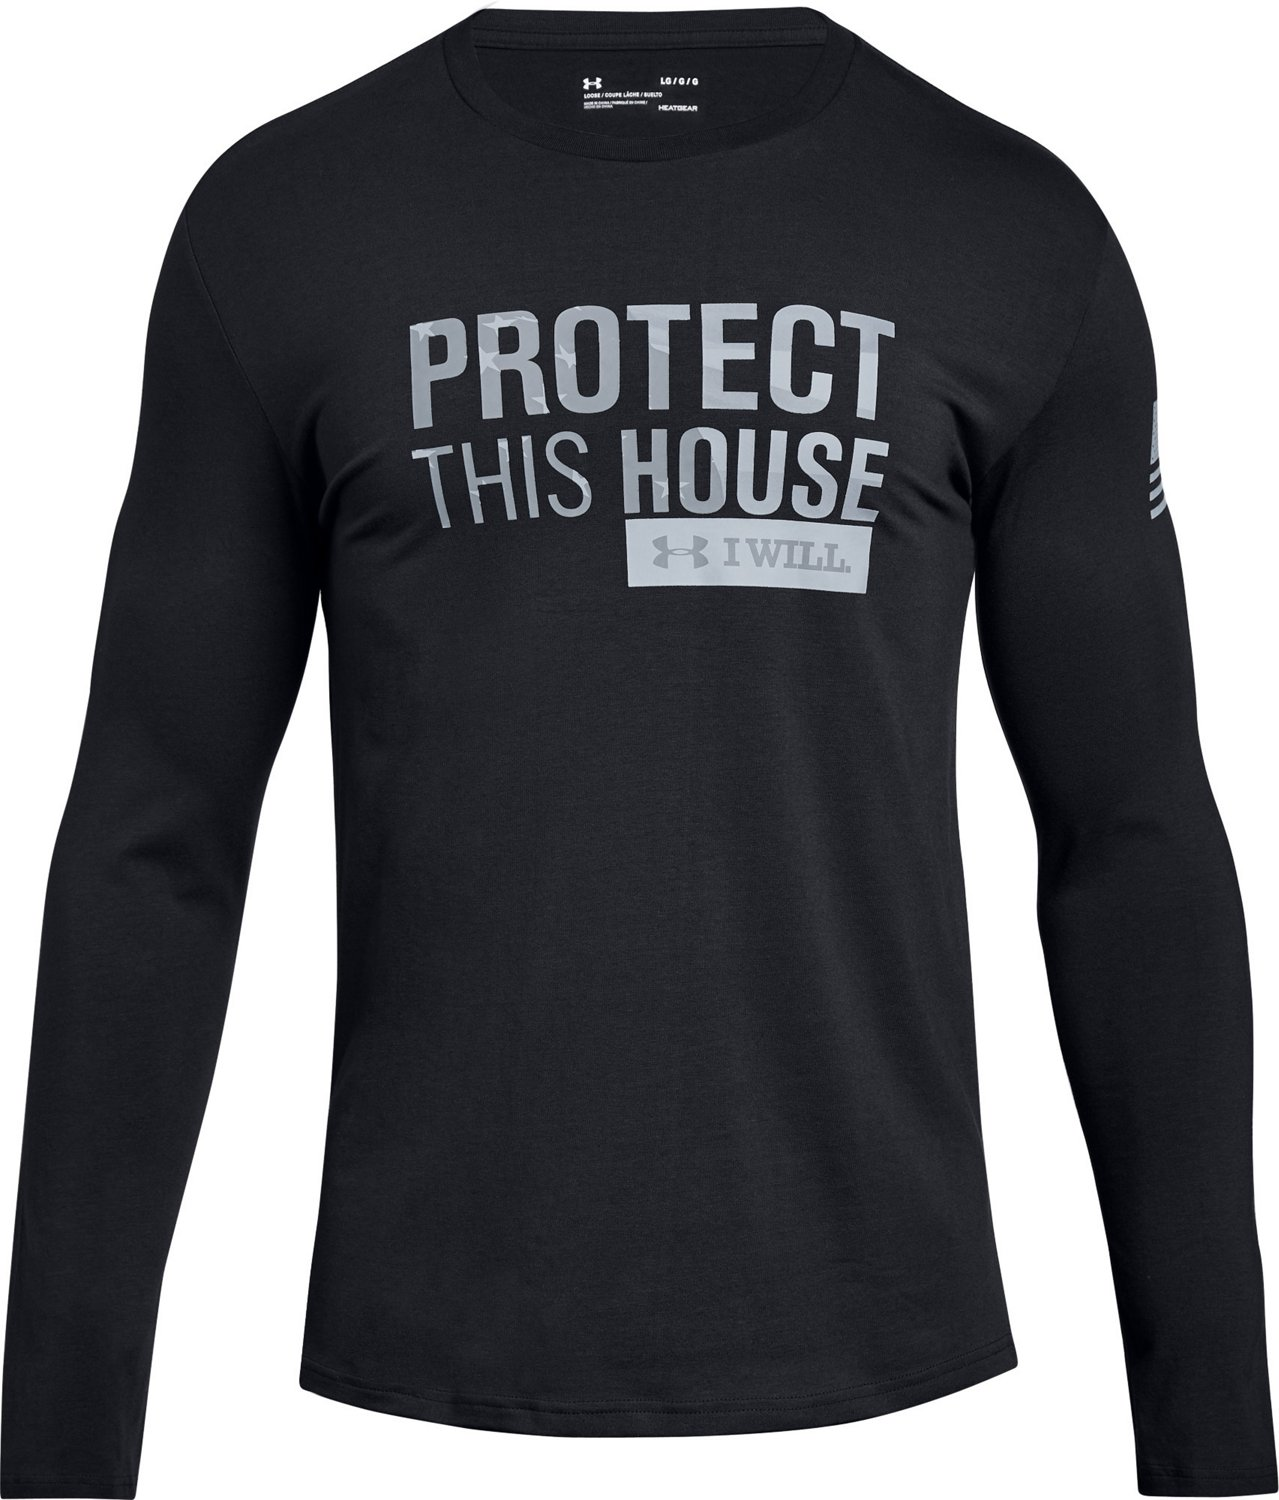 8f40e1a9 Under Armour Men's Freedom Protect This House T-shirt | Academy